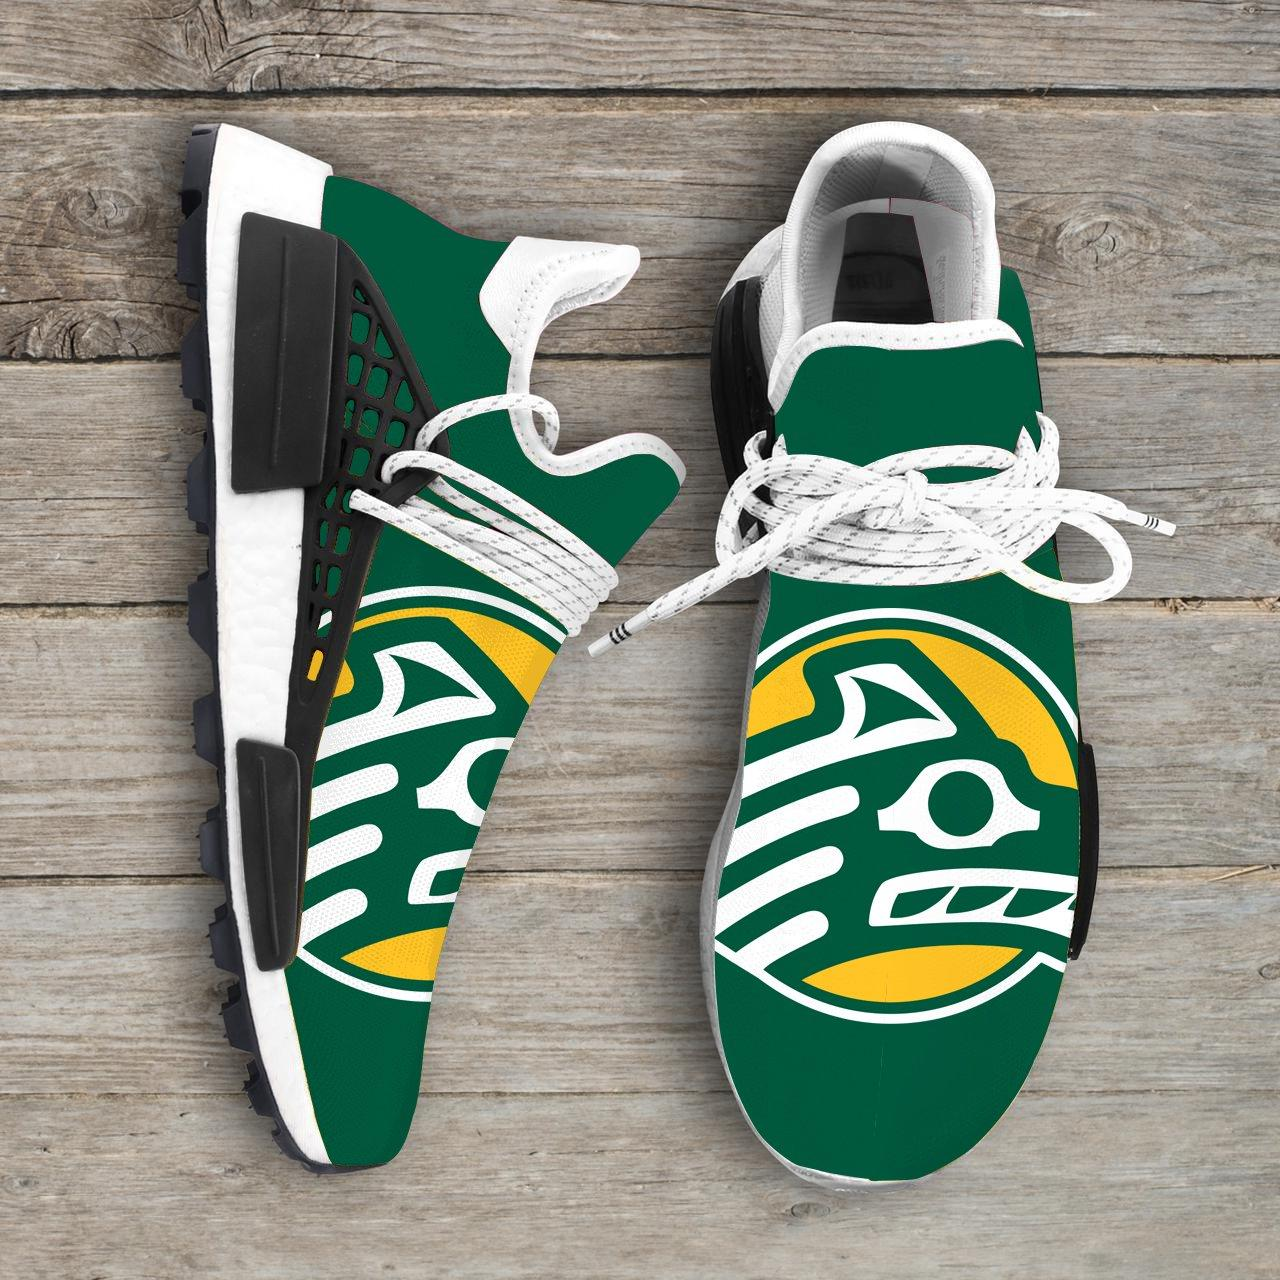 Alaska Anchorage Seawolves NCAA NMD Human Race Sneakers Sport Shoes Shoes 2020